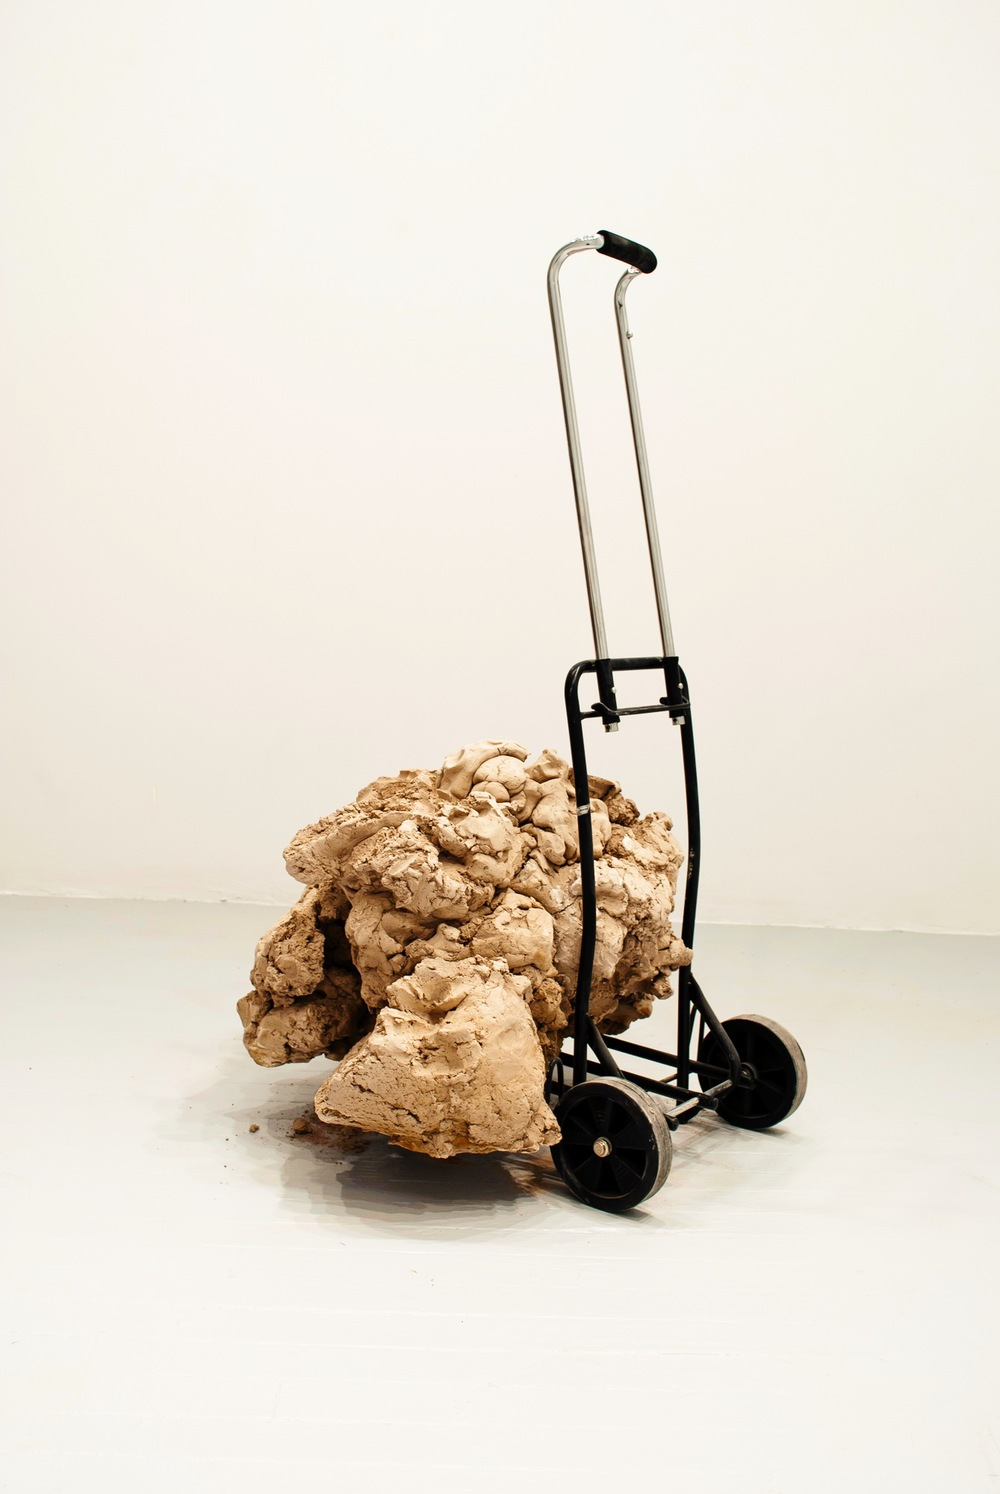 """BEN PETERSON - A little extra baggage - Unfired clay (terracruda), readymade luggage cart,36""""x28""""x25"""""""